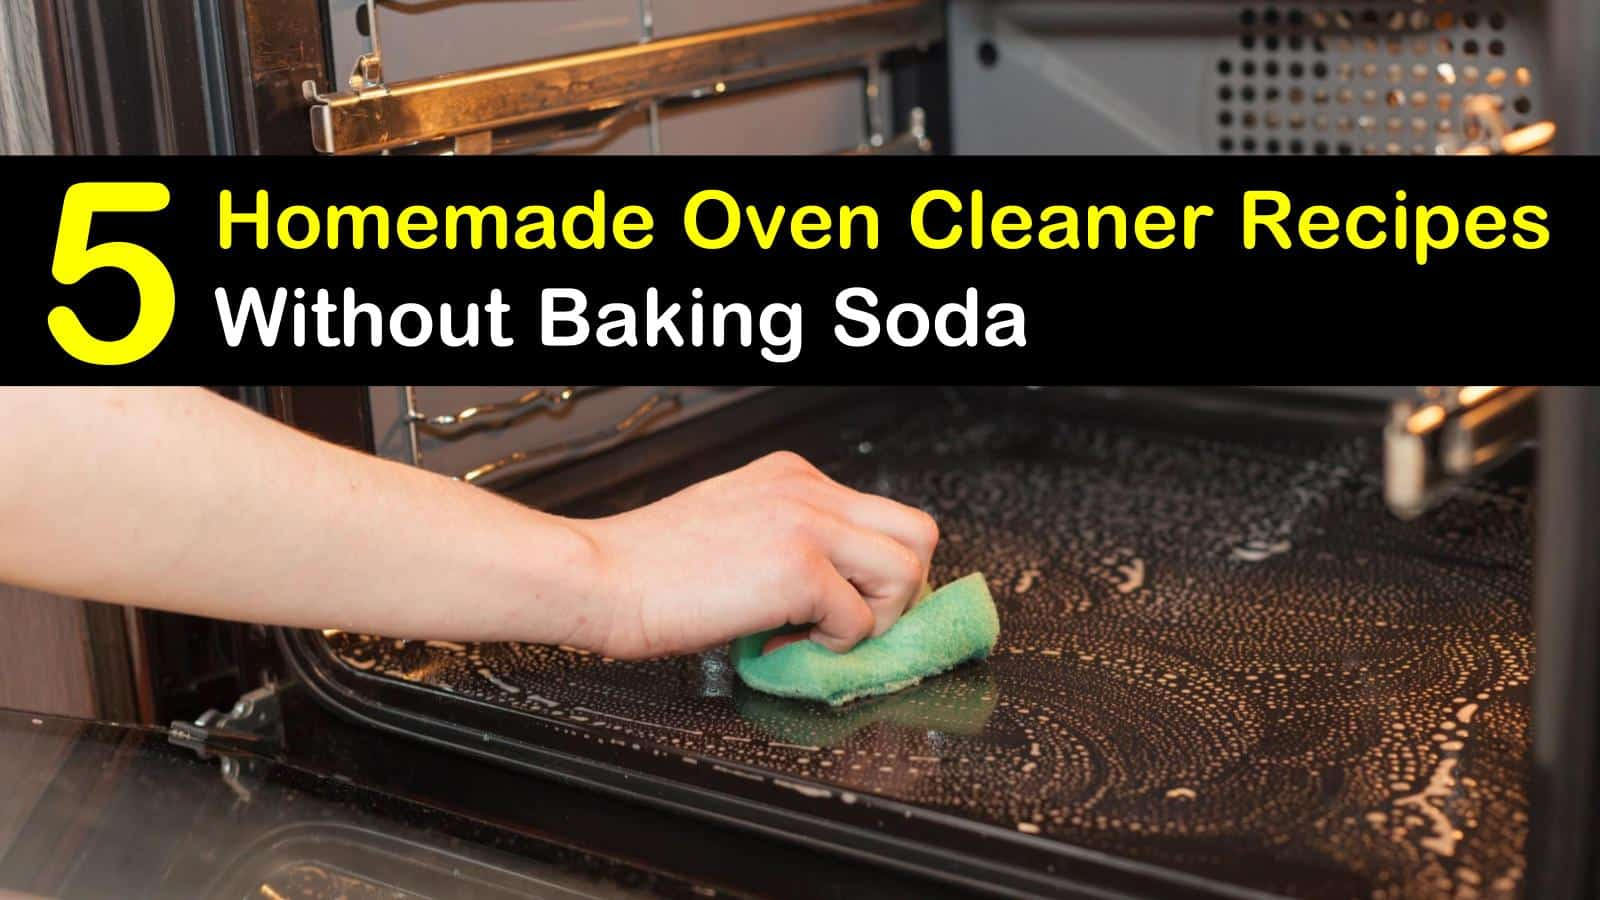 homemade oven cleaner without baking soda titleimg1